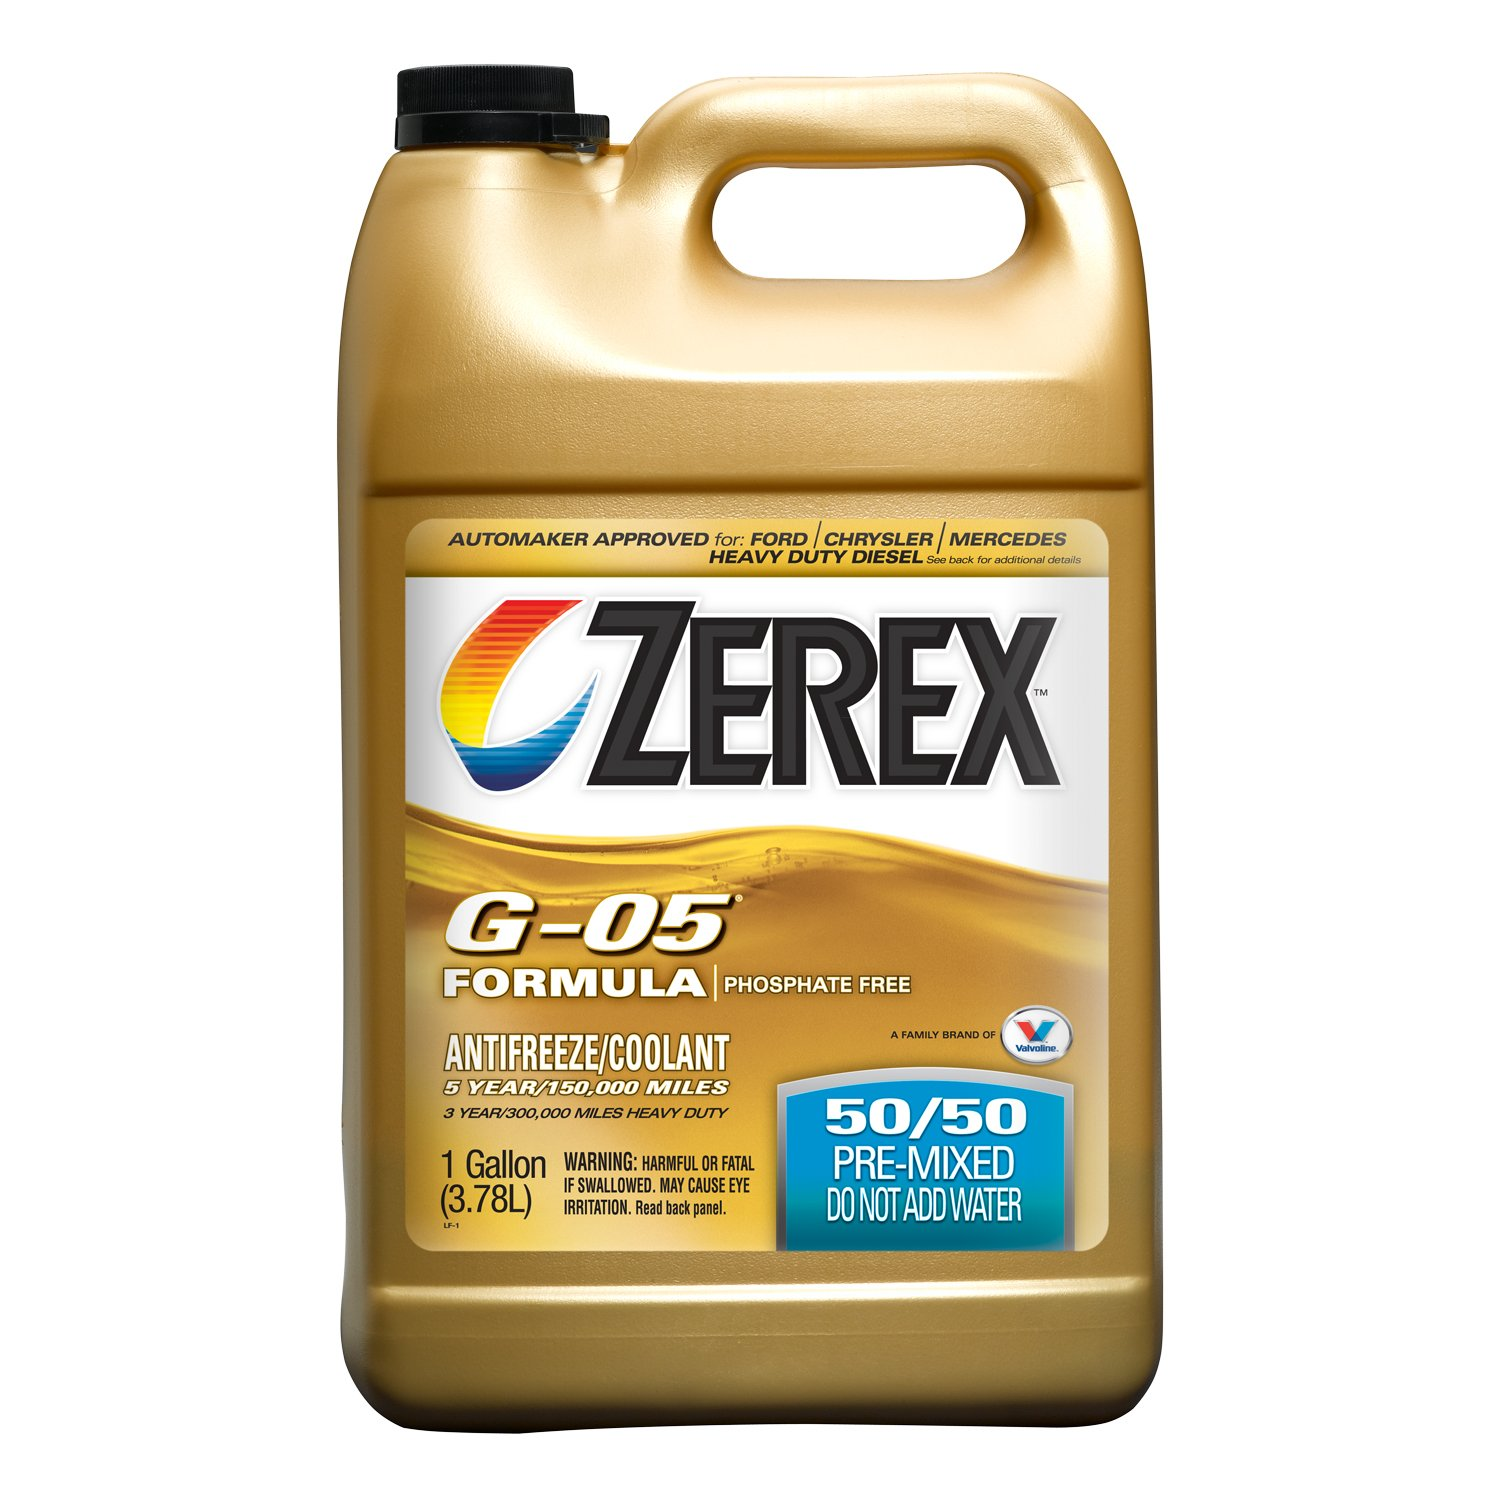 Valvoline Zerex G-05 Antifreeze/Coolant, Ready to Use - 1gal (ZXG05RU1)